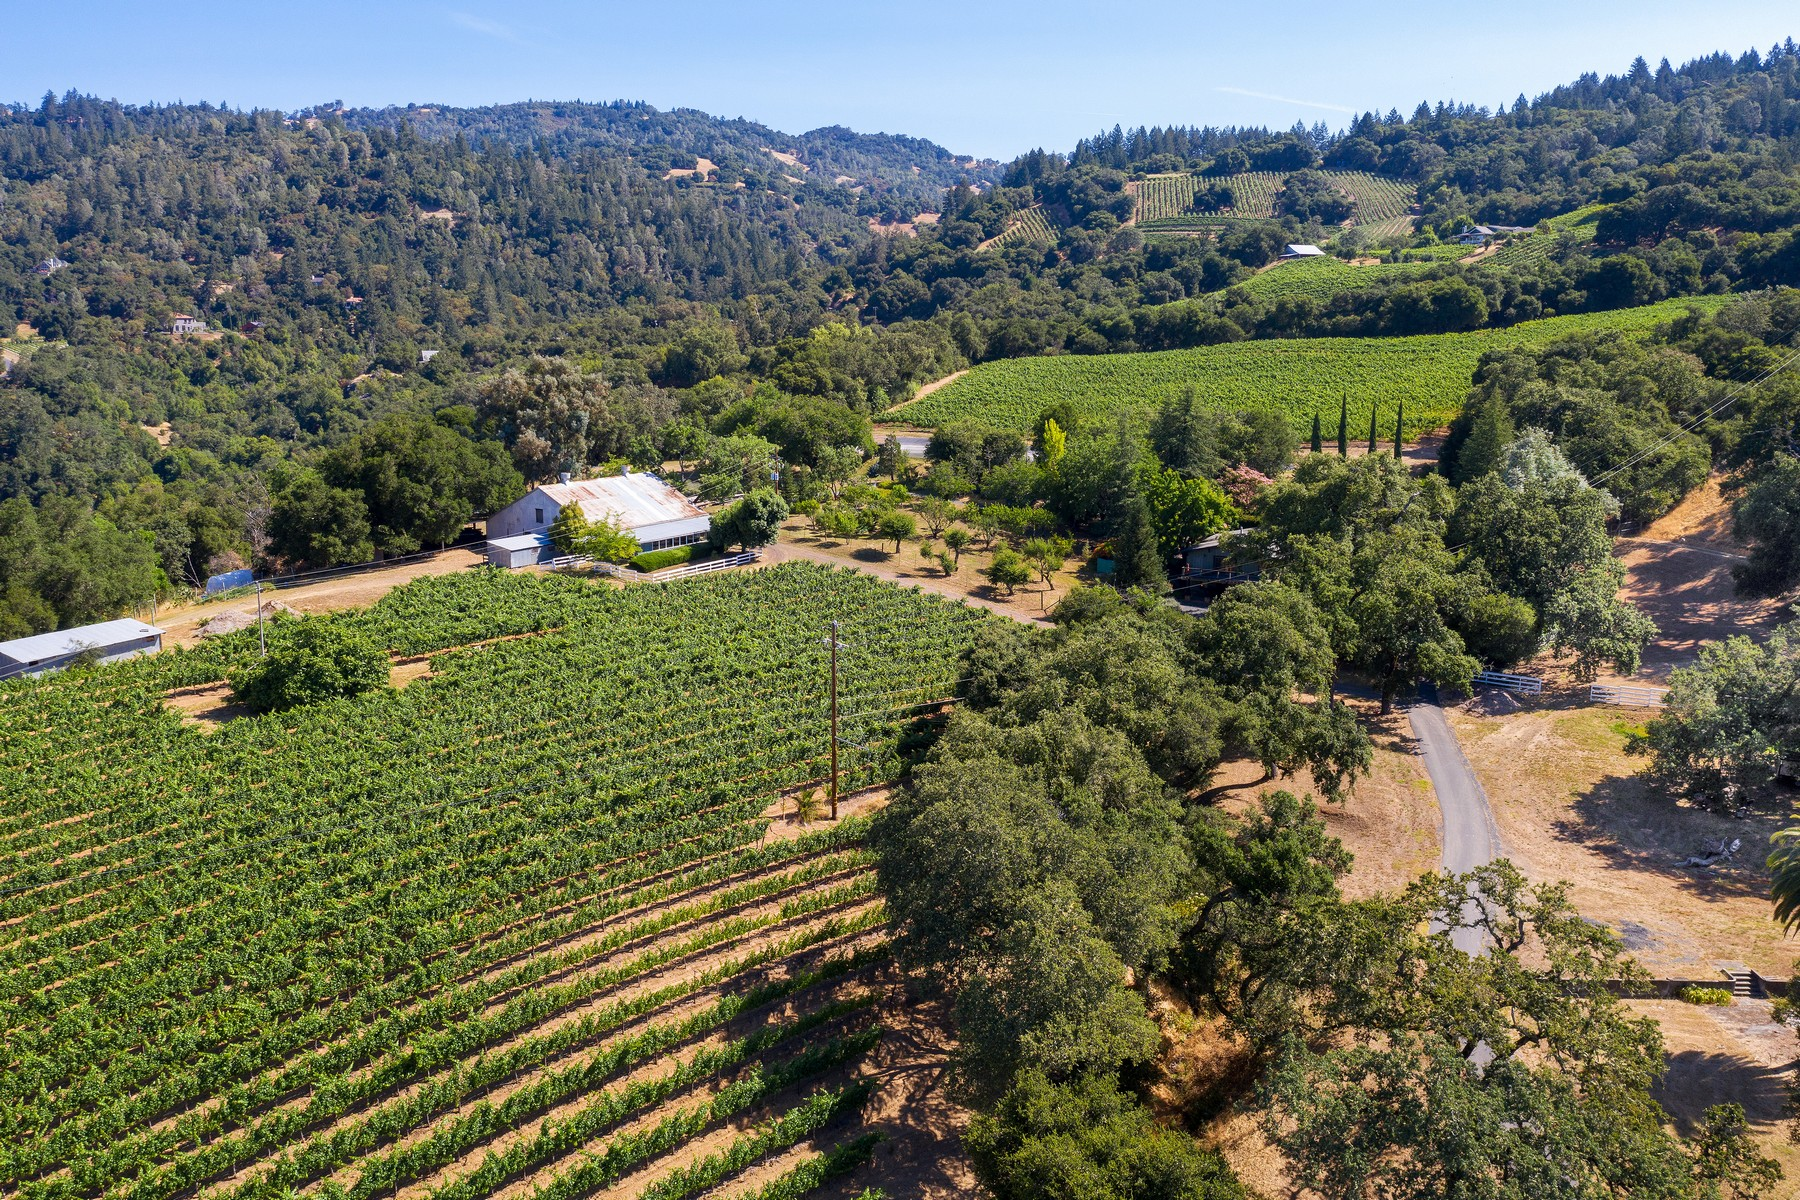 Vineyard Real Estate for Sale at Asti Wine Ranch 25900 Highland Ranch Road Cloverdale, California 95425 United States